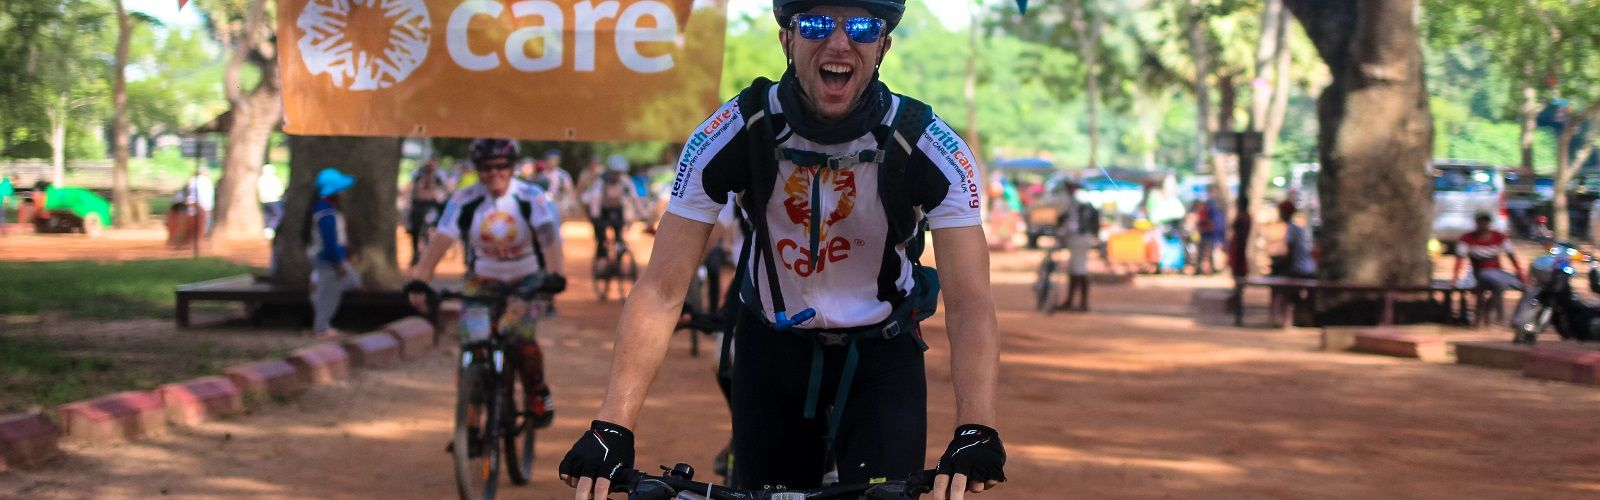 Lendwithcare Zambia Bike Ride 2020